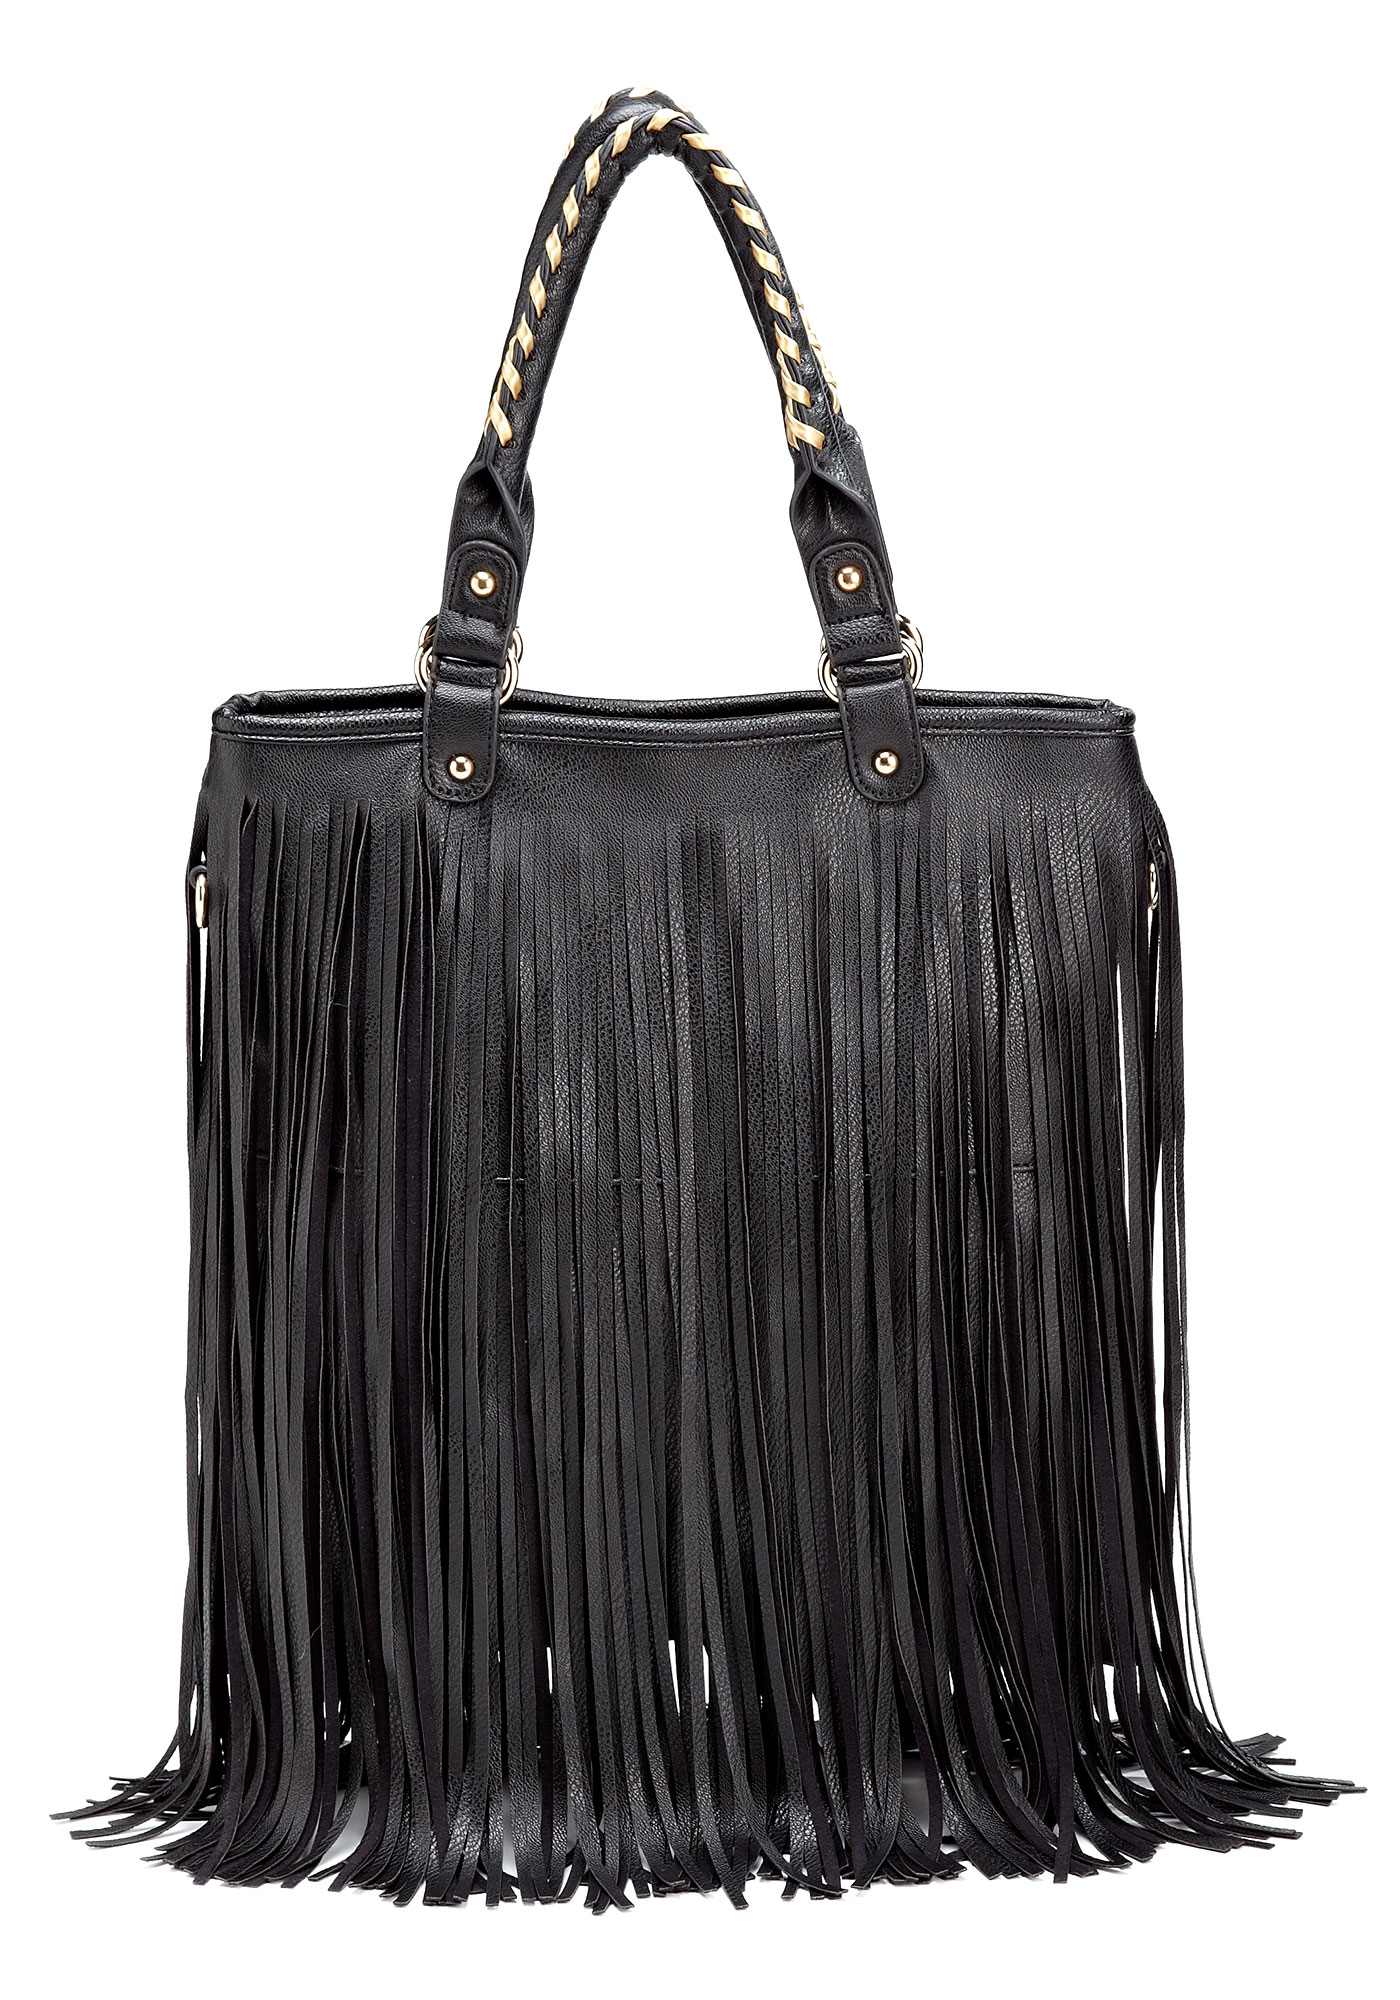 black fringe bag leatherBlack Faux Leather Fringe Bag Fabulous 0Q4MJouw